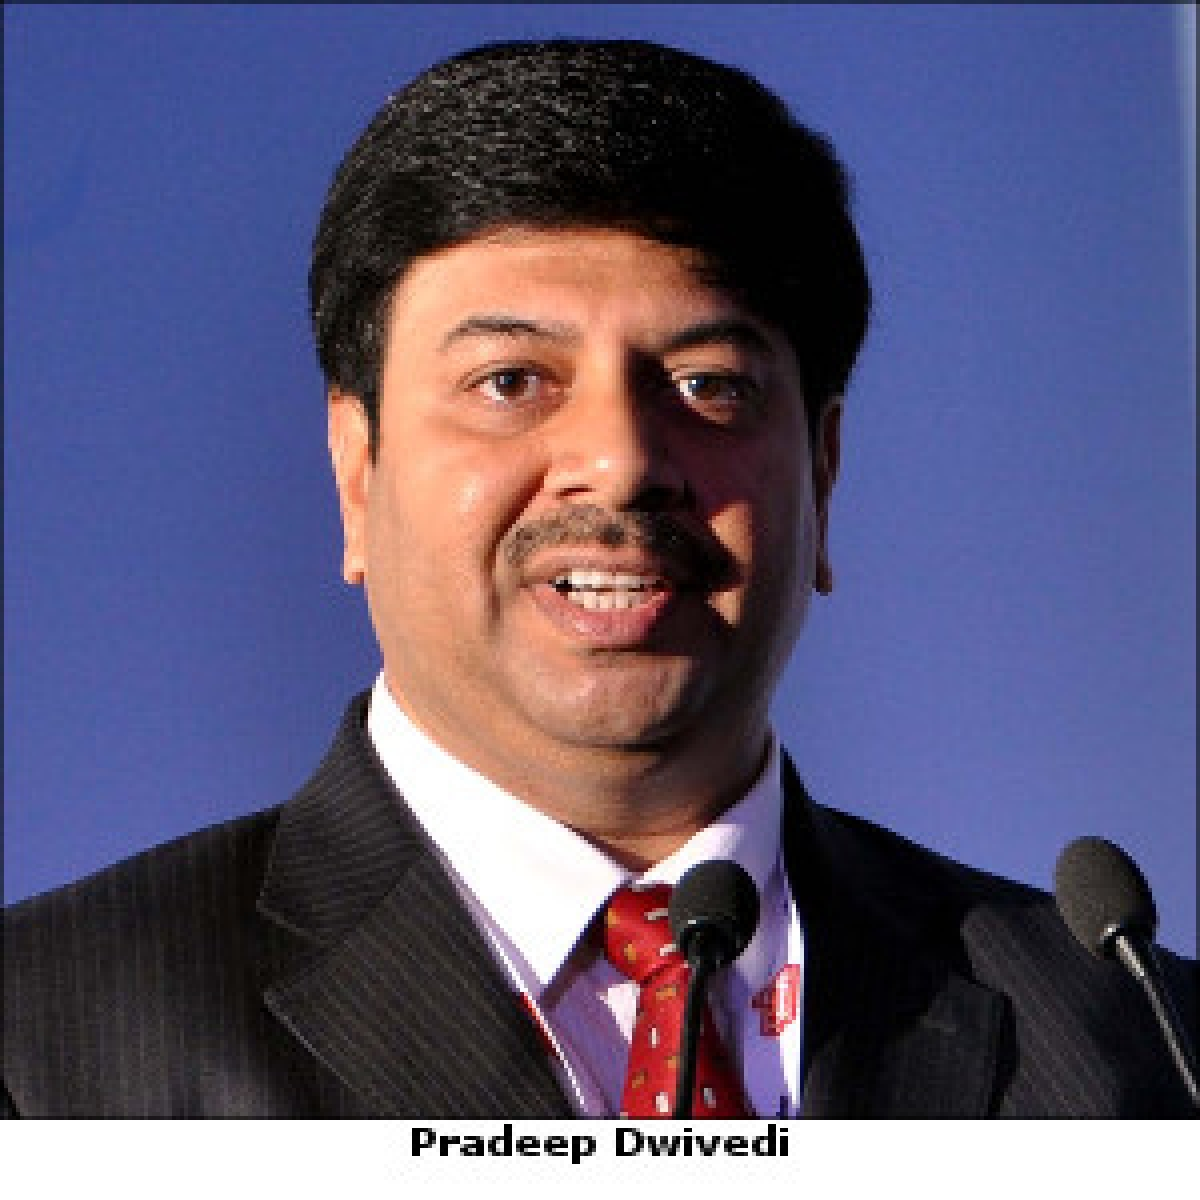 16 September will be my last day at Dainik Bhaskar Group: Pradeep Dwivedi